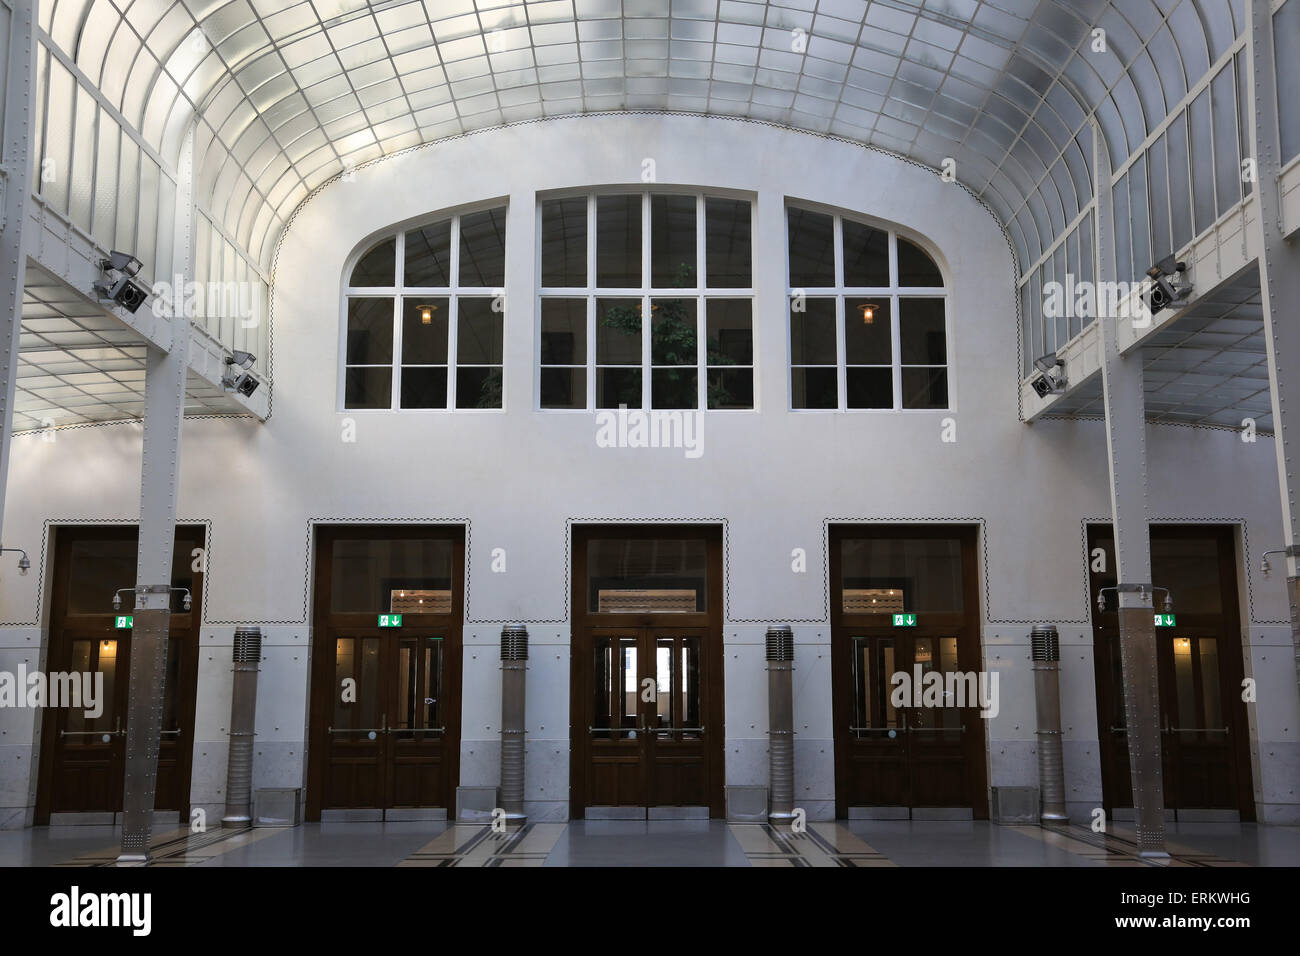 Hall. Postal Office Savings Bank Building by Otto Wagner, Vienna, Austria, Europe Stock Photo